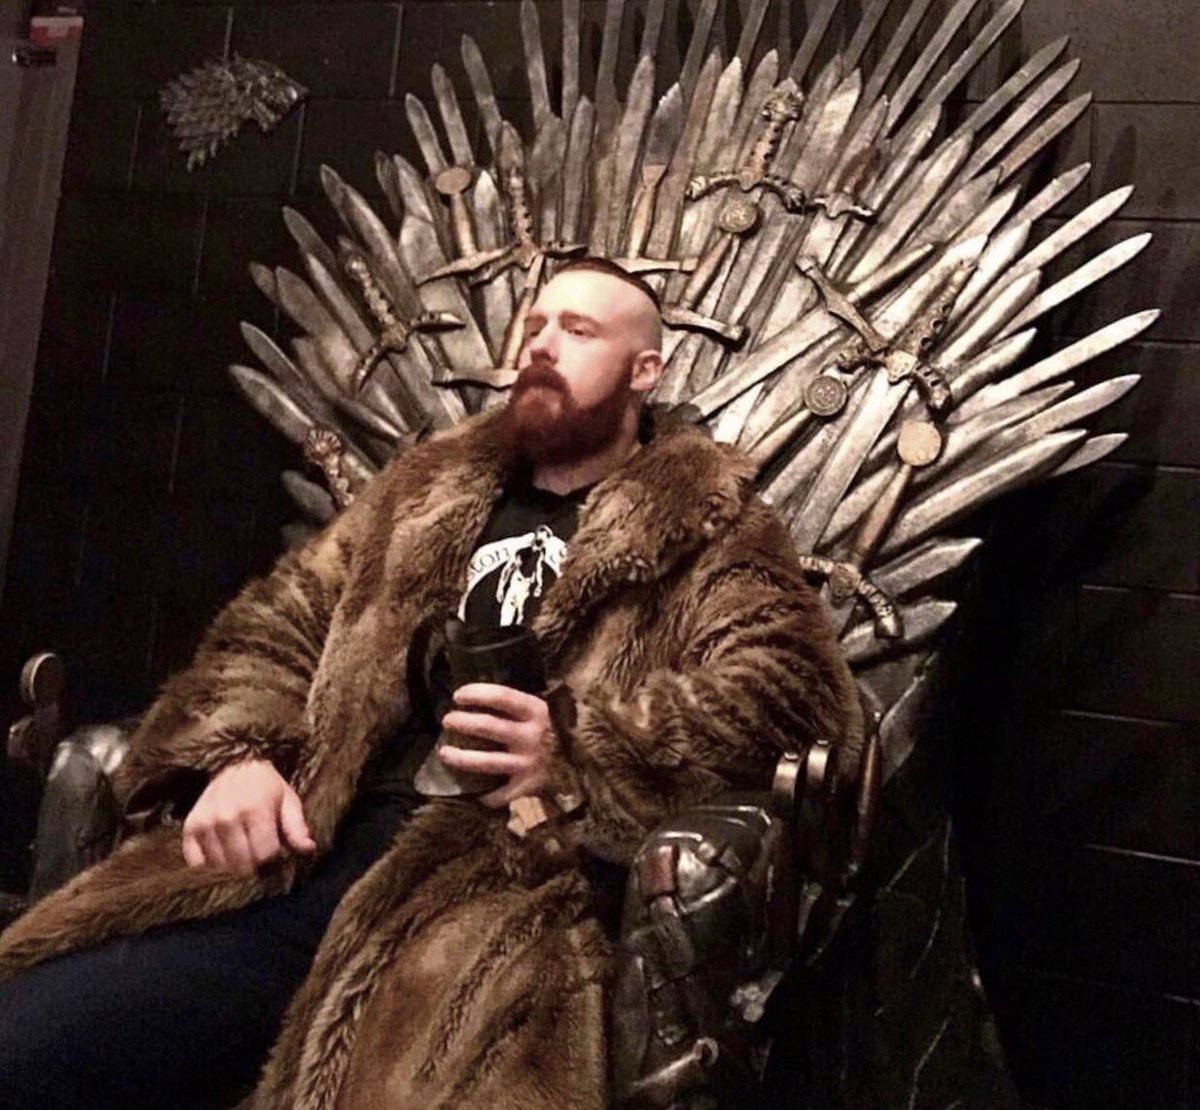 Game of Thrones comes to #CelticWarriorWorkouts today to get you hyped for #GOT tonight. A genuine wild giant from North of the Wall... he came South to bench 👉🏻 http://www.youtube.com/CelticWarriorWorkouts…